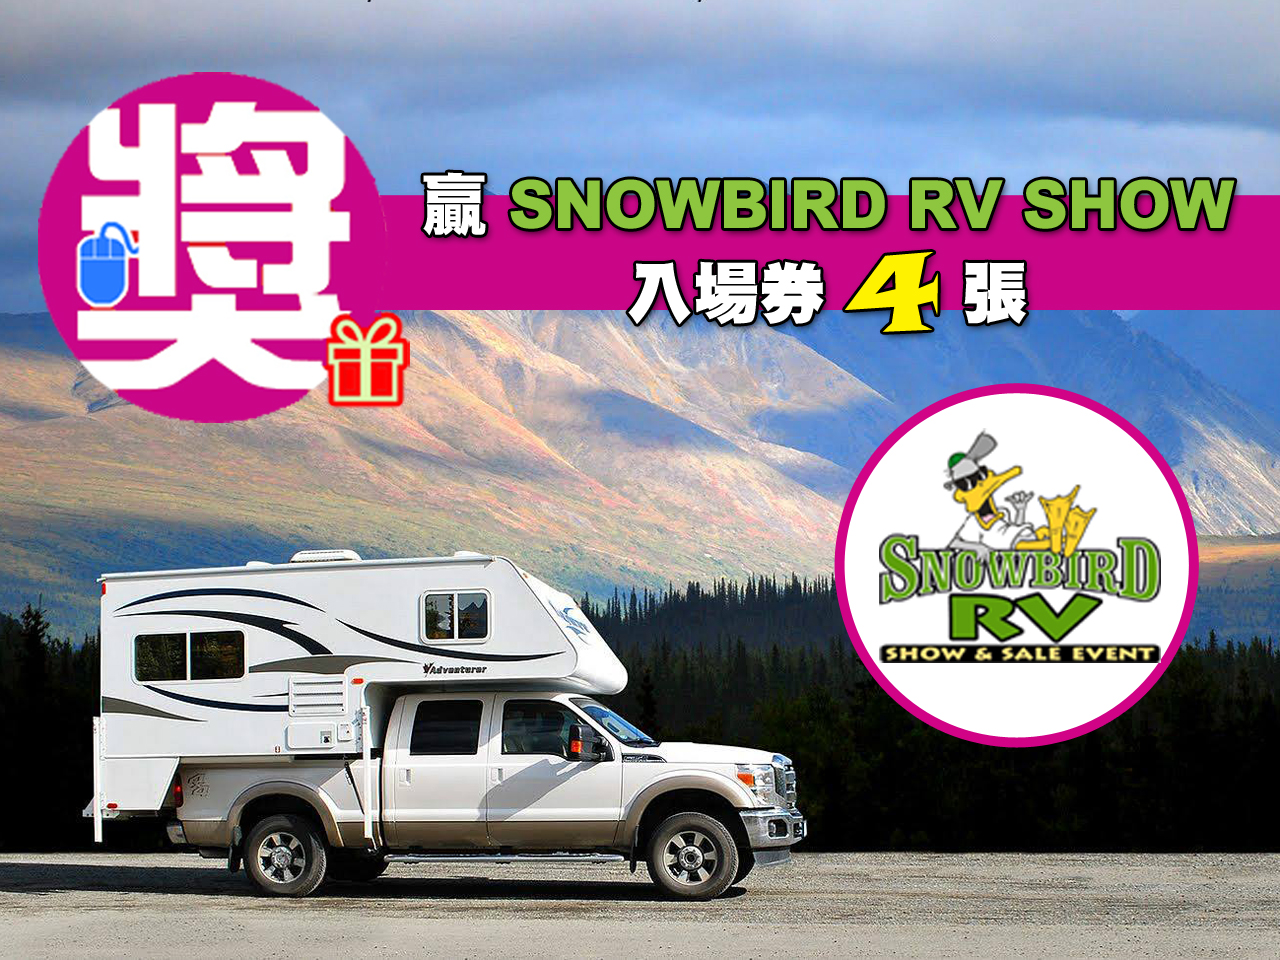 贏 4 張 2018 Snowbird RV Show & Sale Event 入場門票